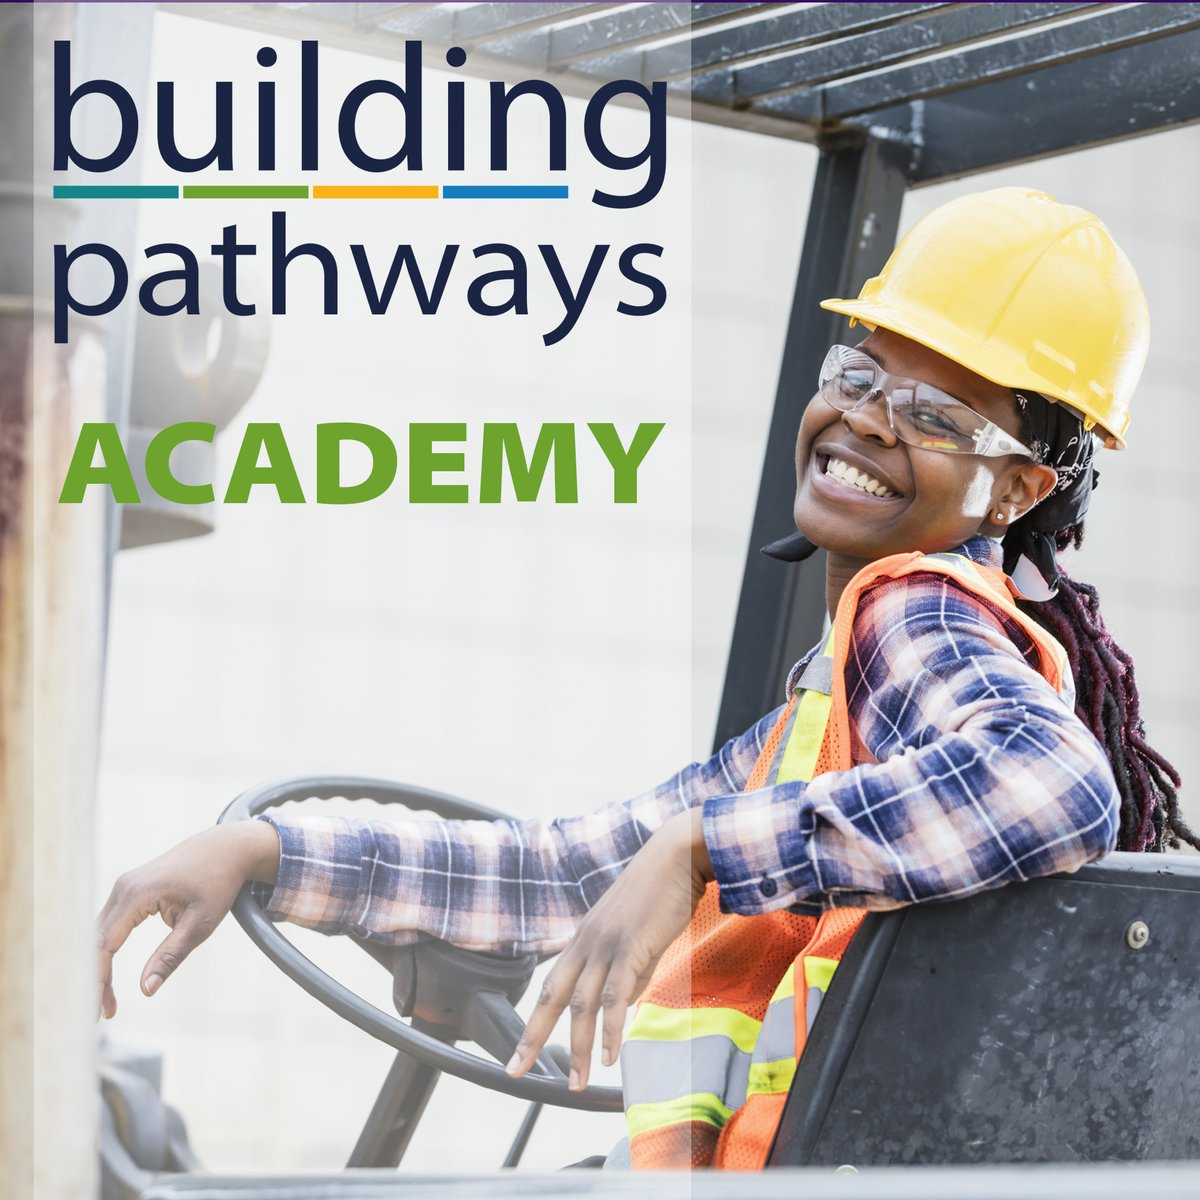 Next week registrations open for the first of our London-wide Building Pathways Academy pre-employment programmes! Check the link below!  https://t.co/pn888qtaPA @WeAreMcAlpine @lovepaddington @JCPinSthLondon   #LoveConstruction #Careers #Training #ConstructionUK  #CV #CSCS